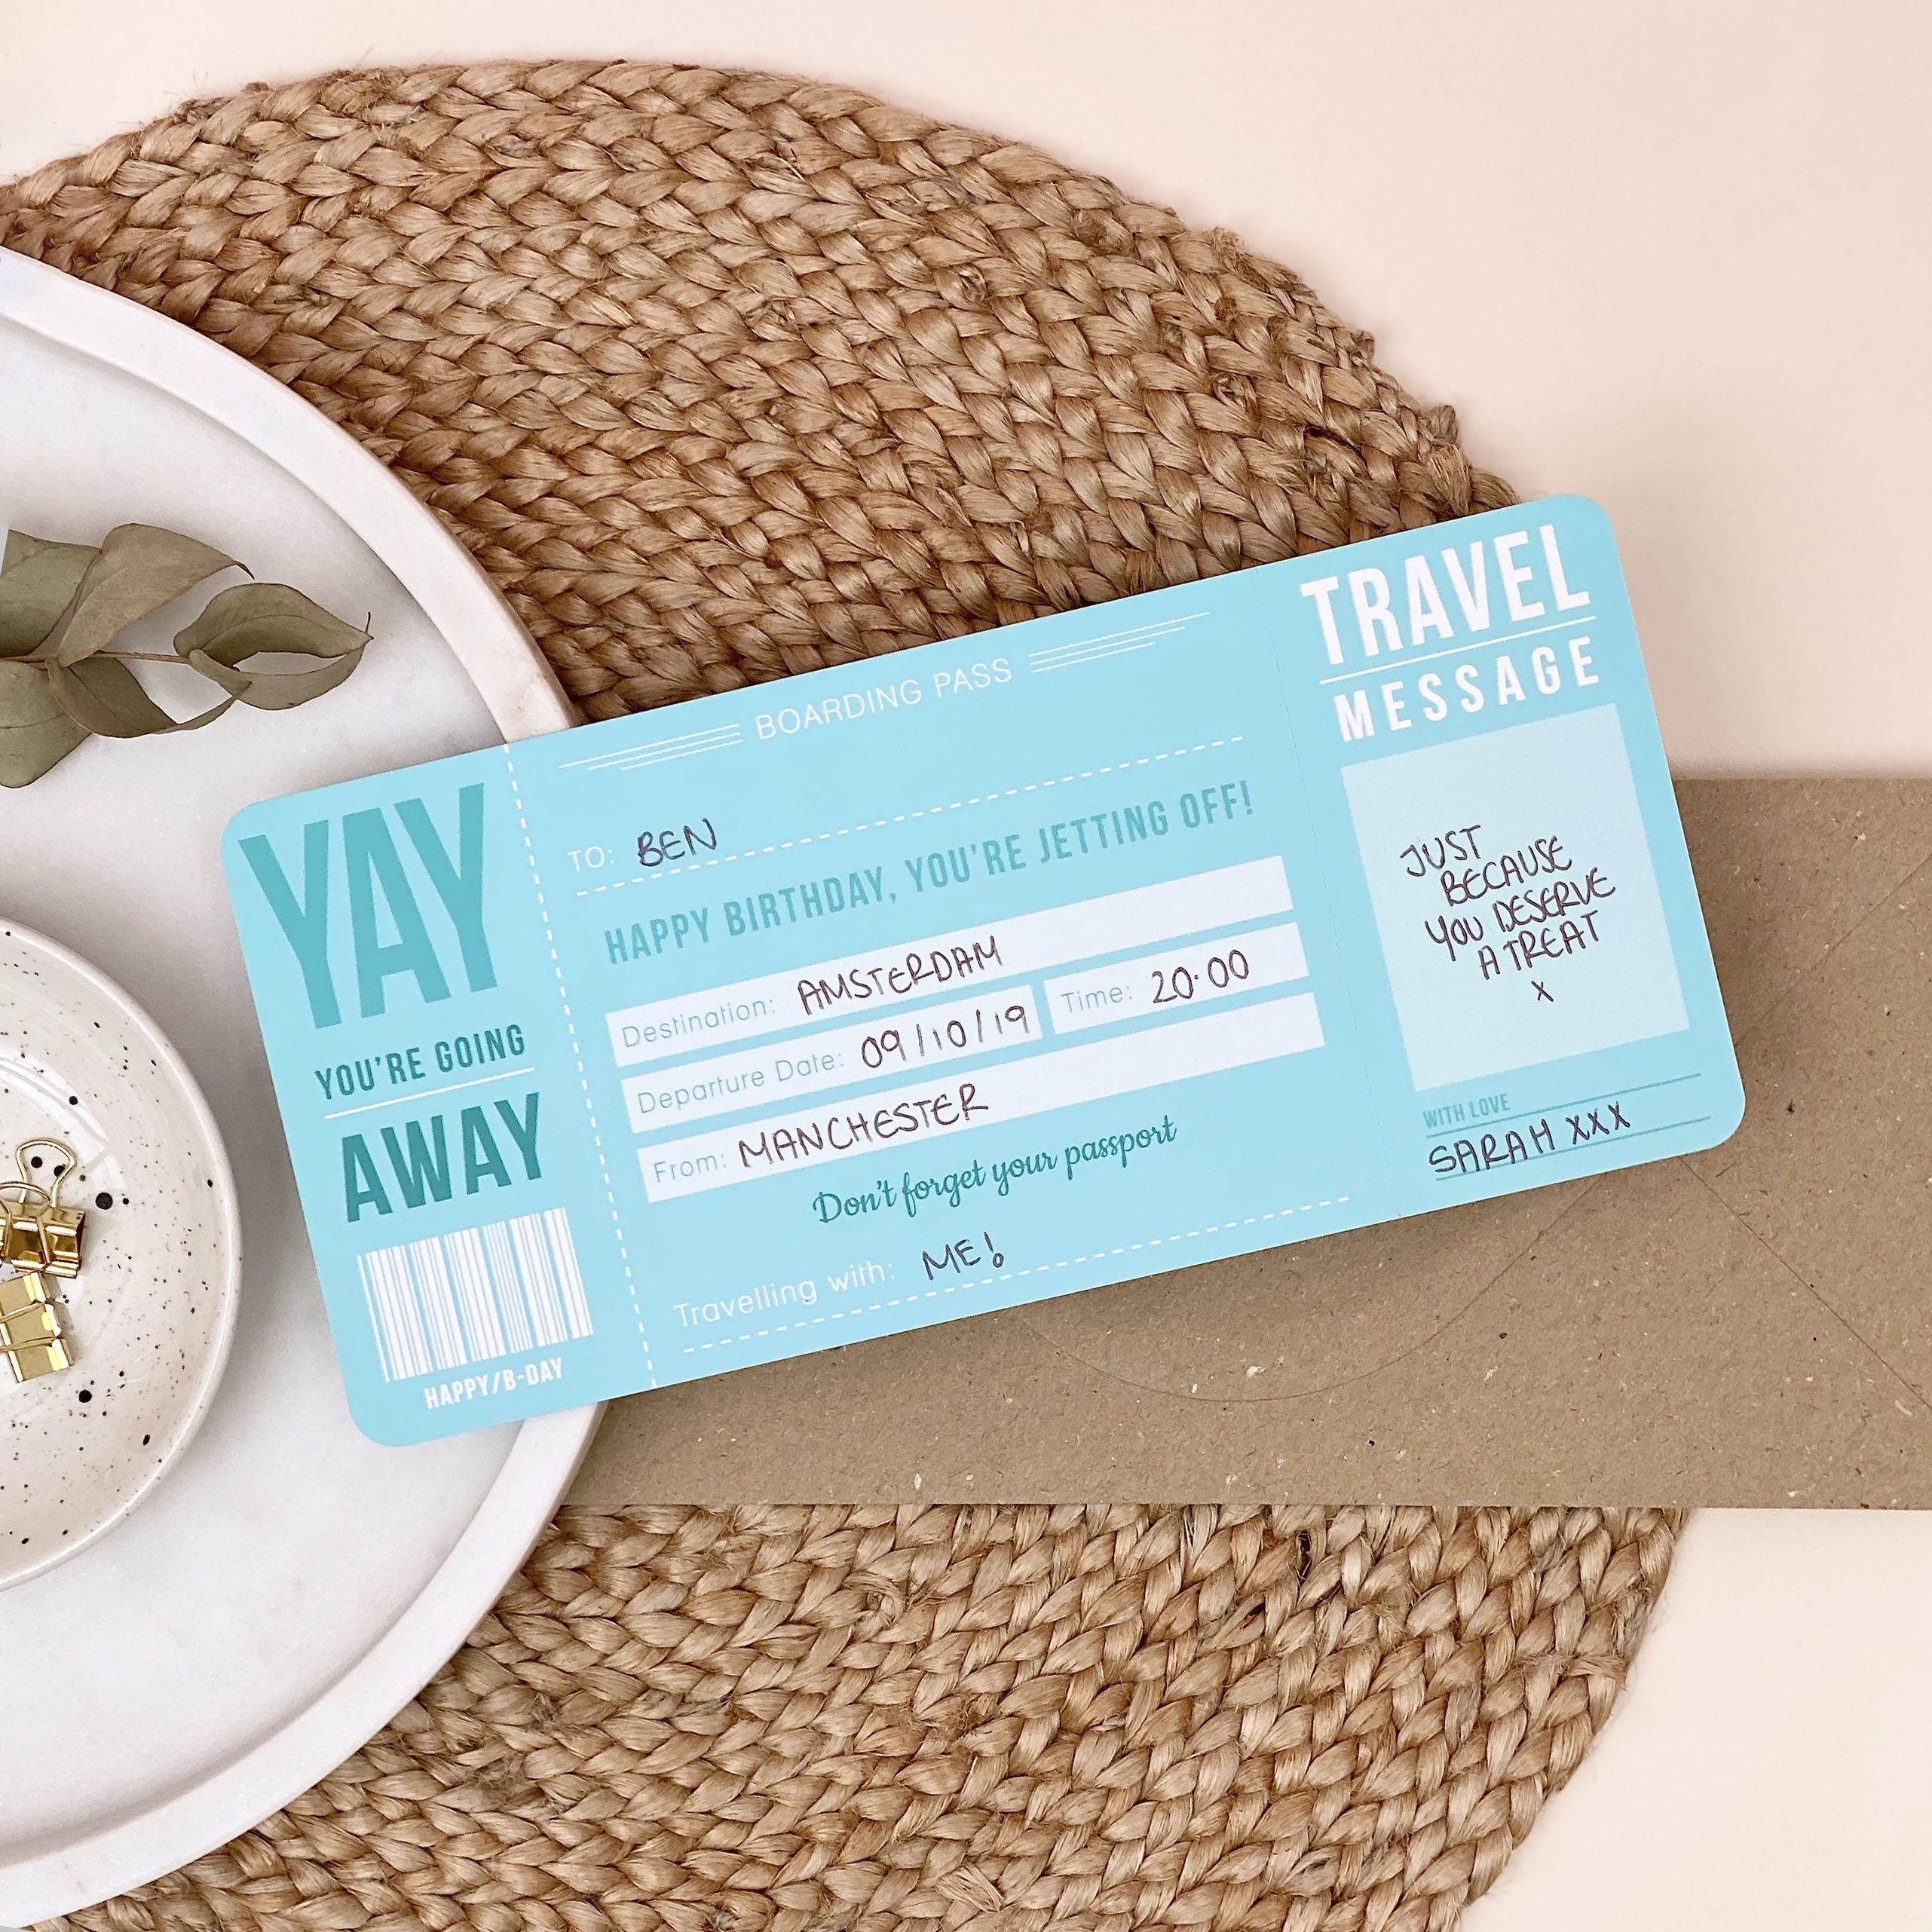 Blue Birthday Boarding Pass - Designed by Rodo Creative - Wedding stationery and greetings card design